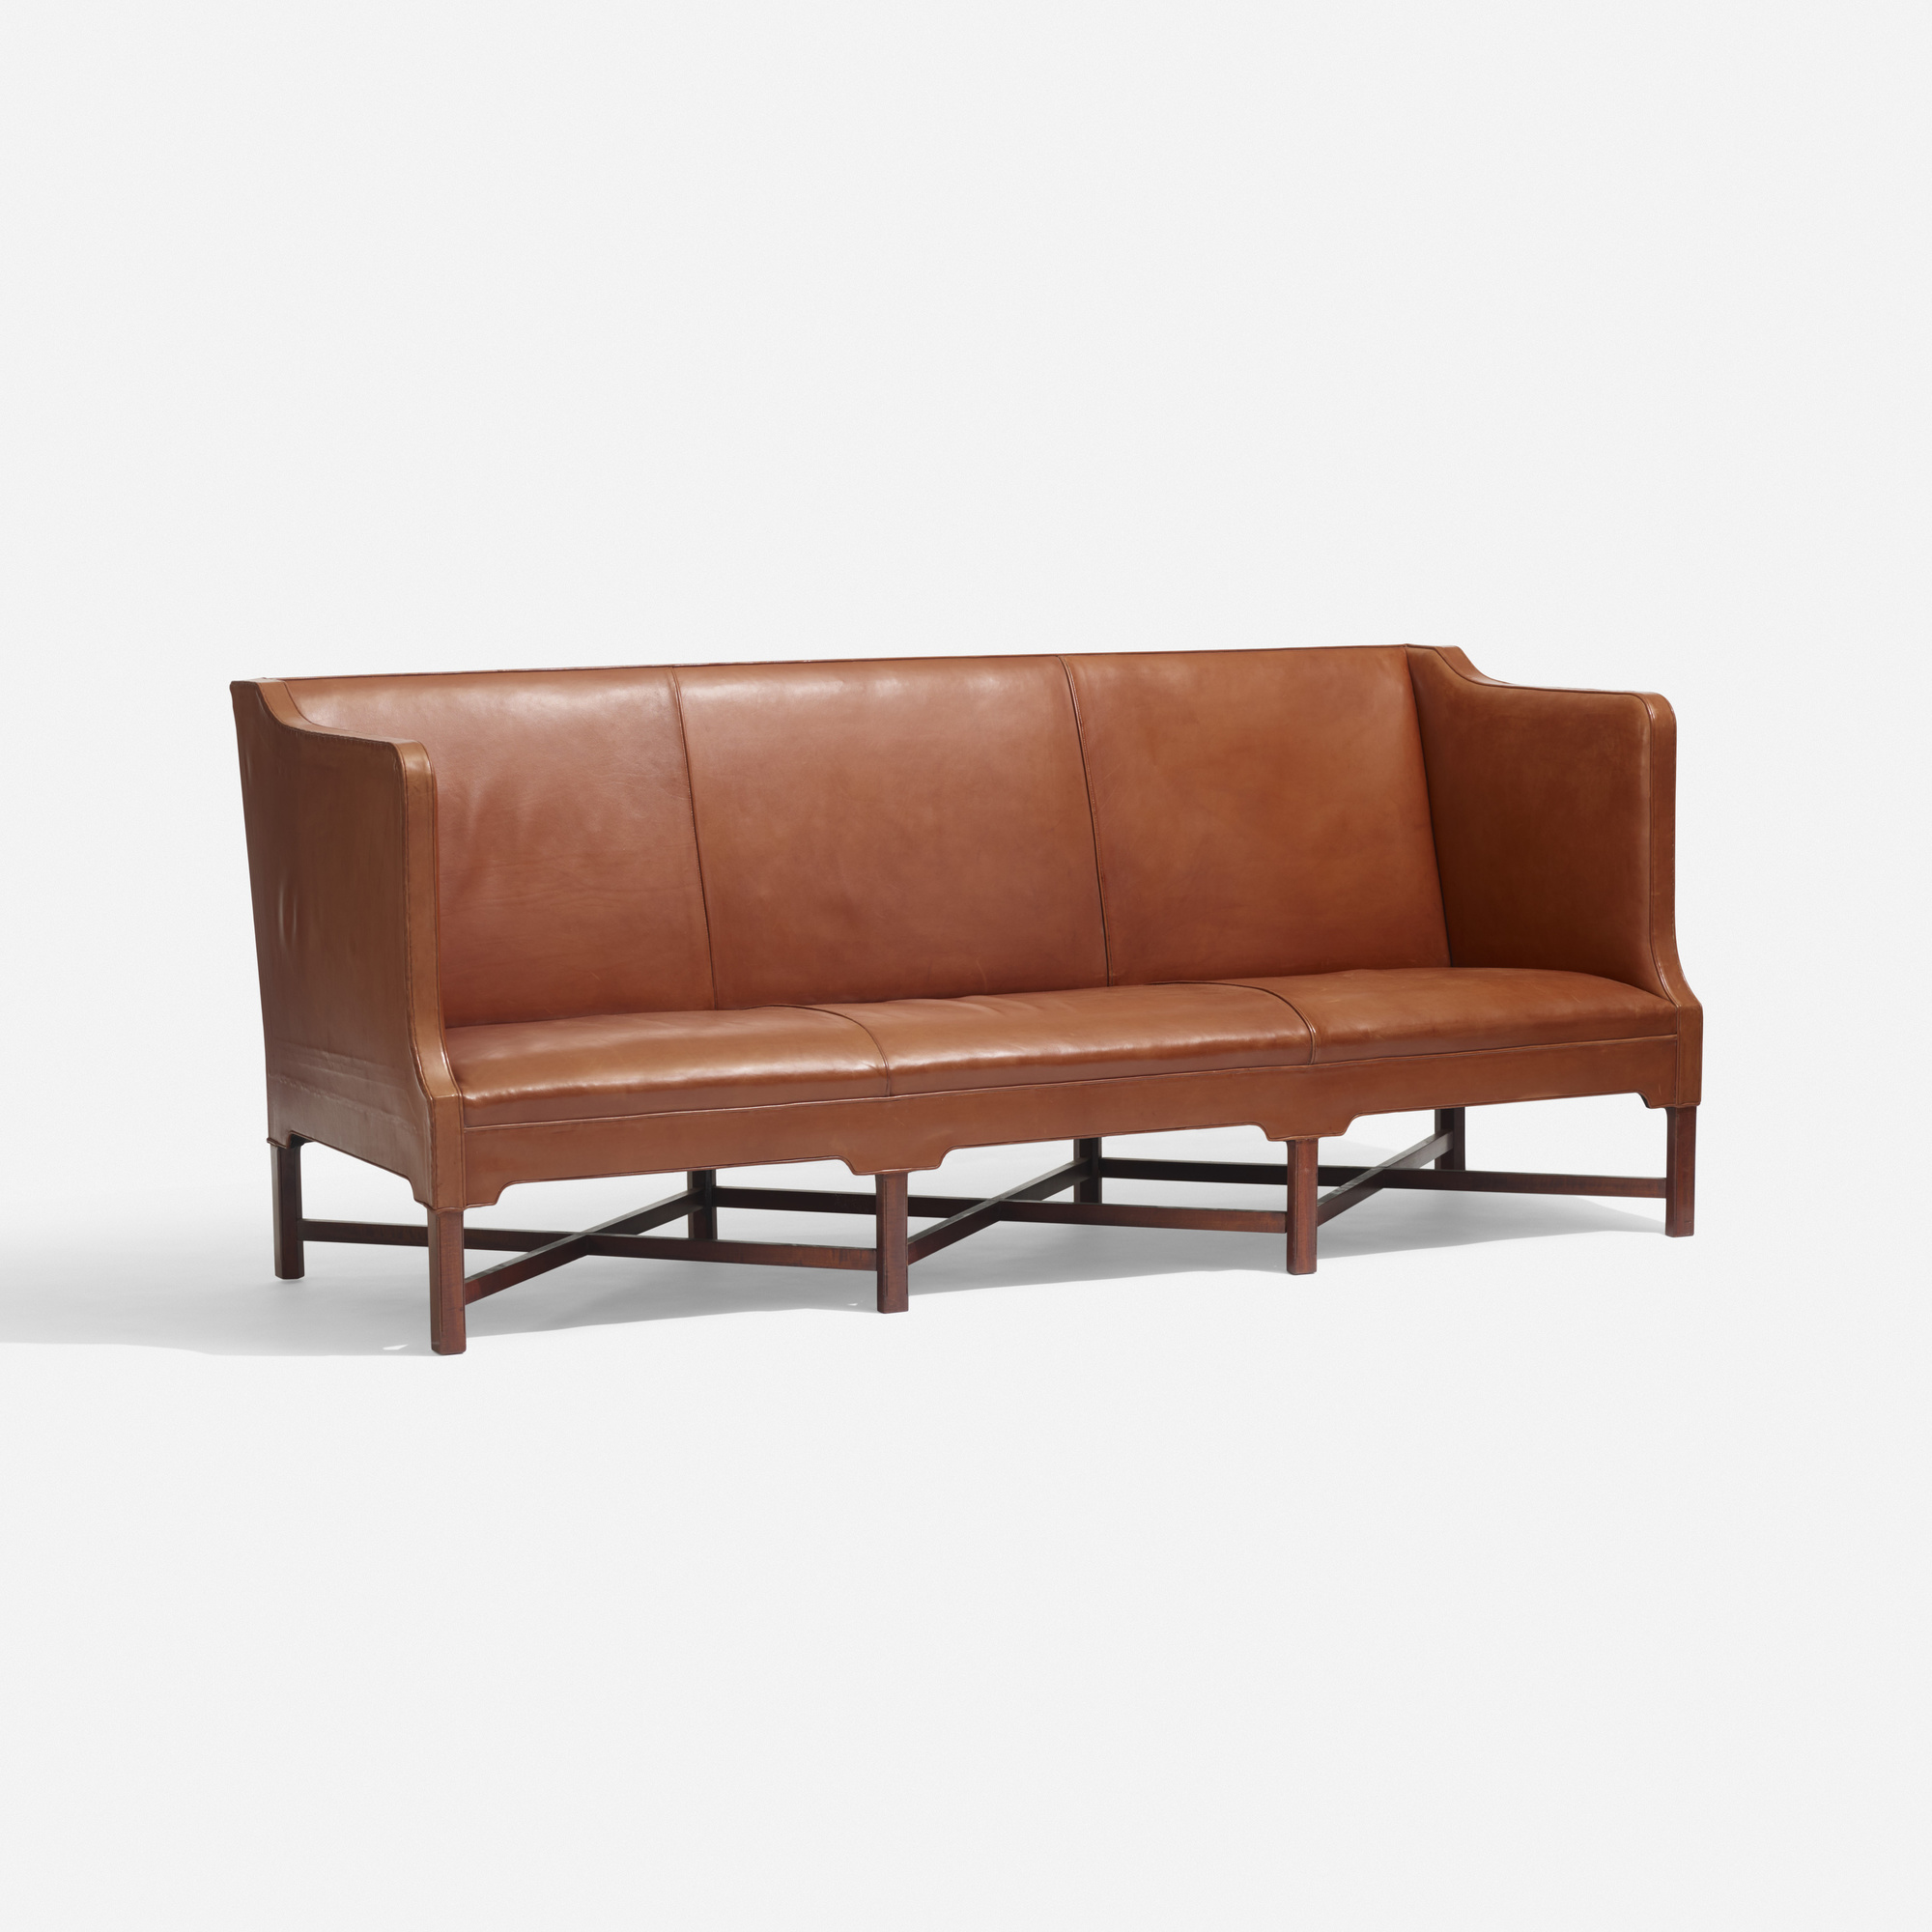 105 kaare klint sofa for Danish design sofa